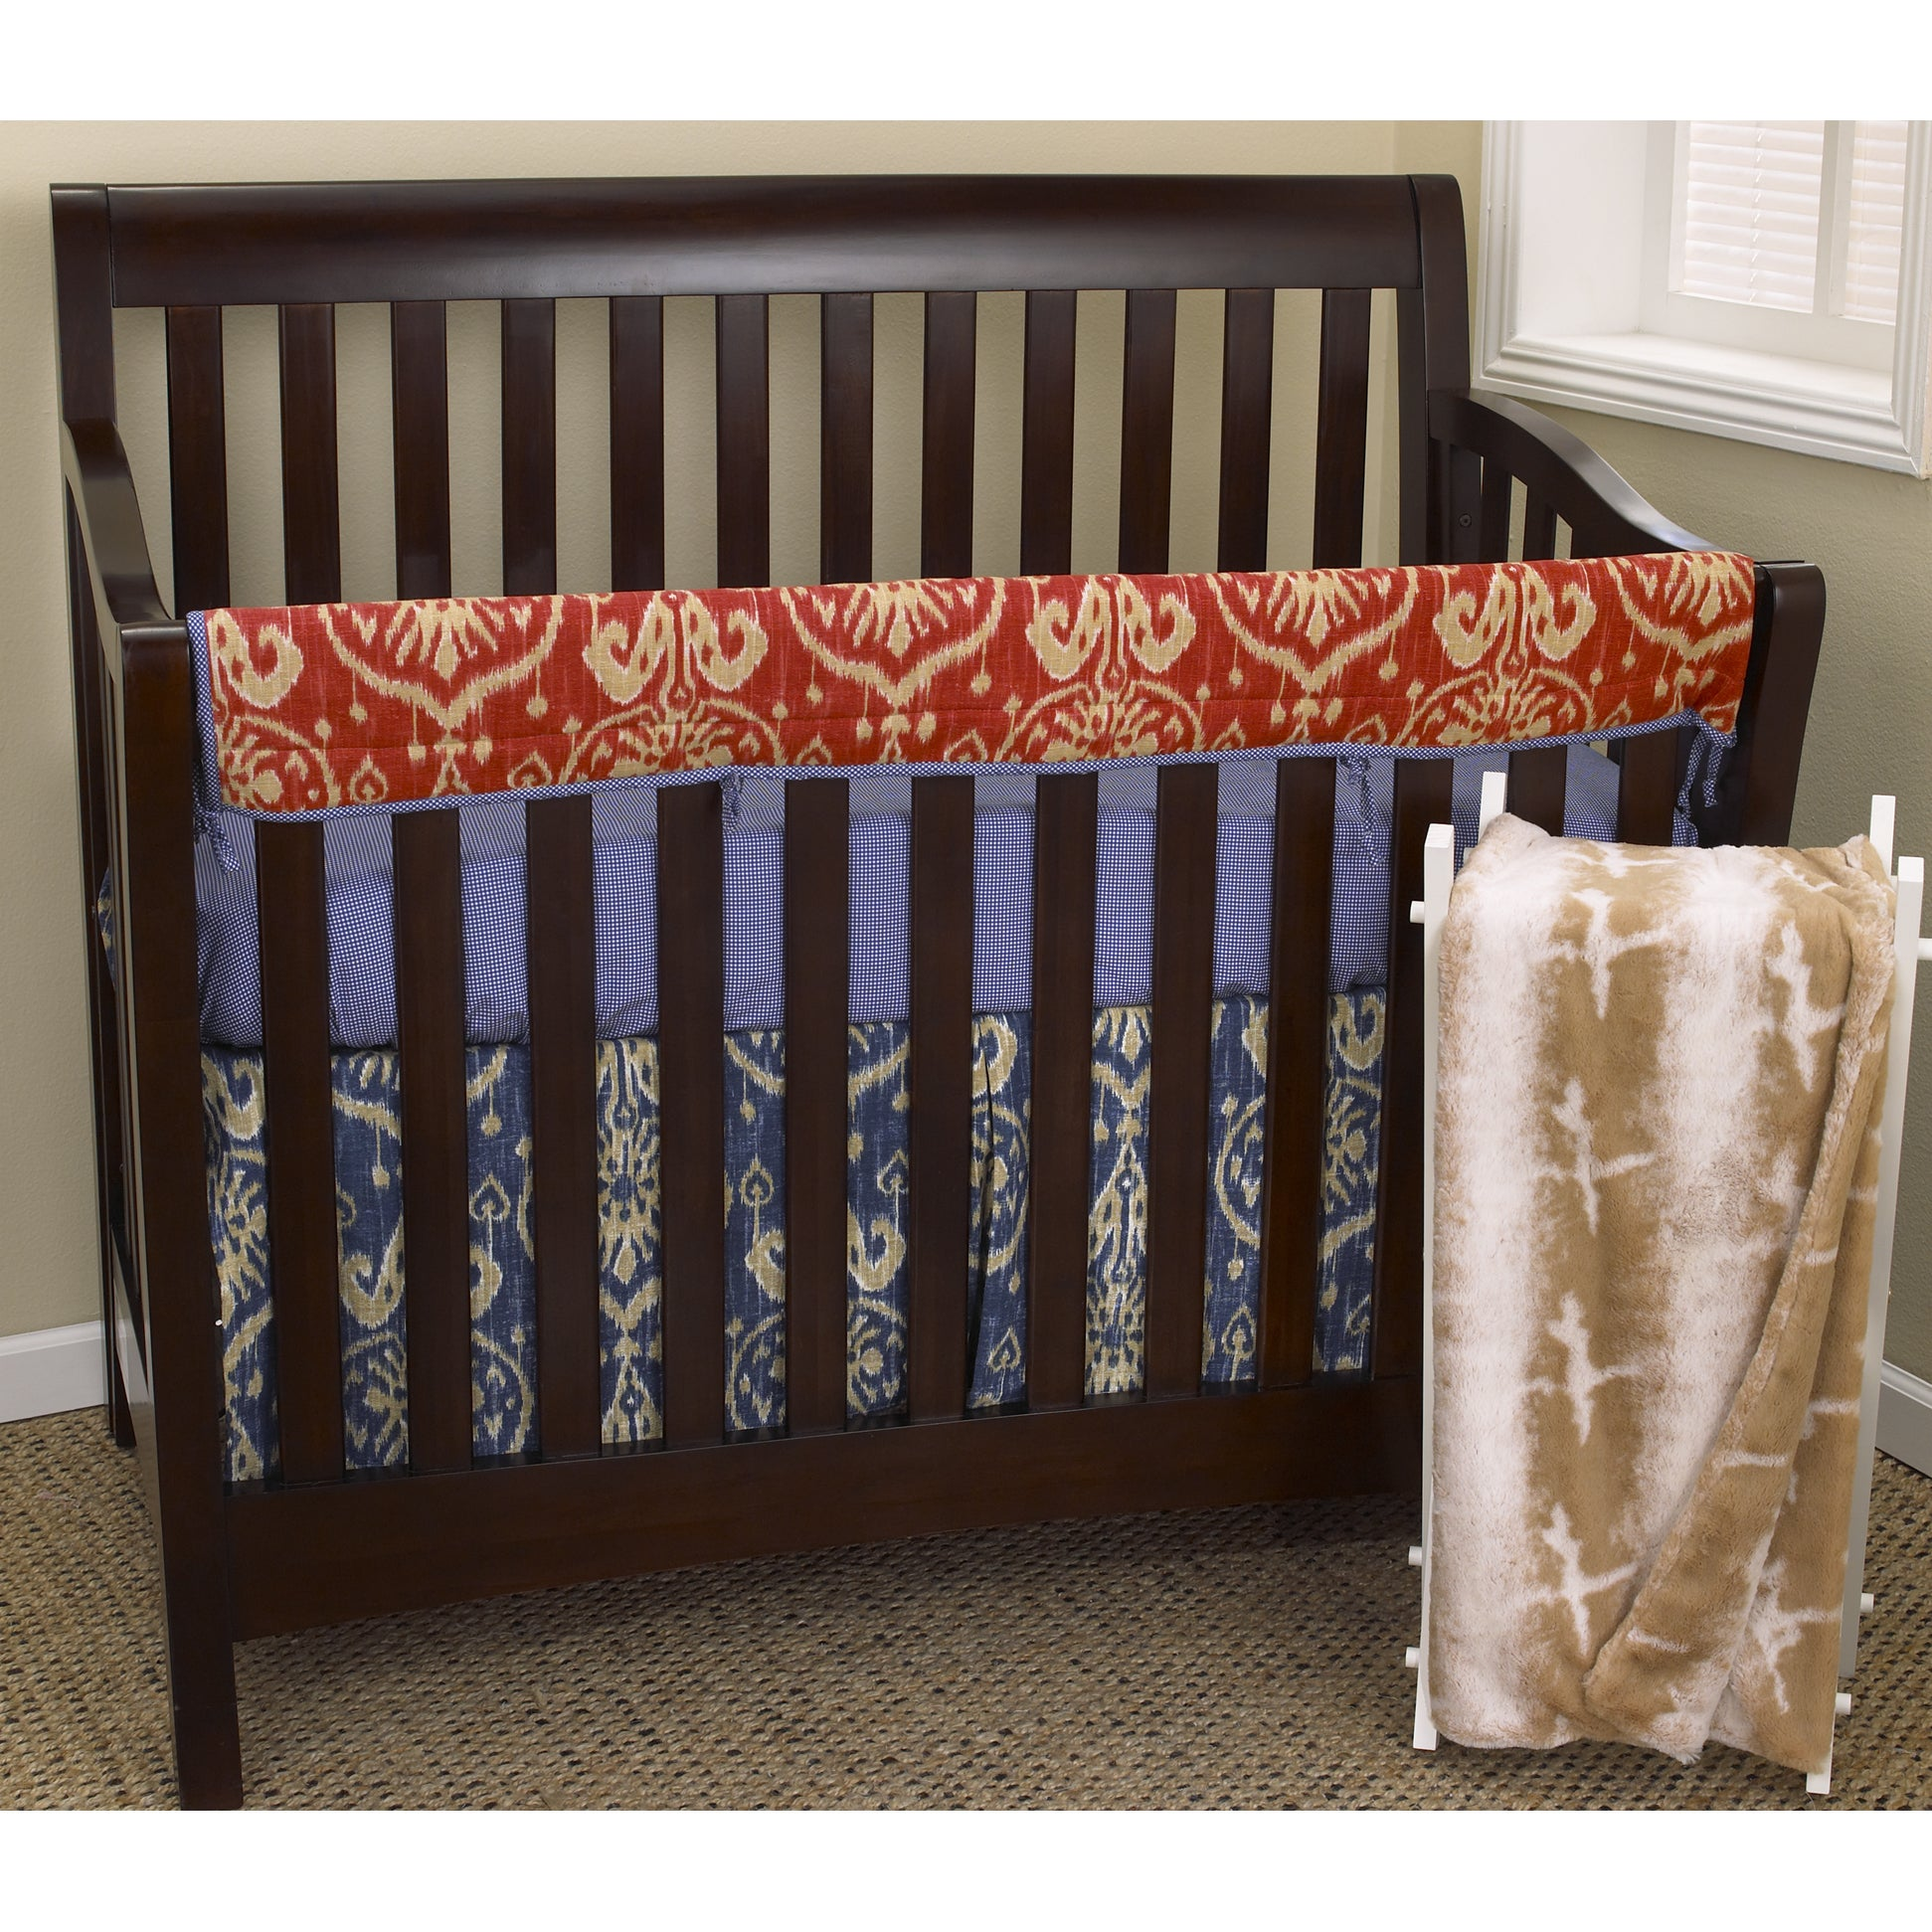 Cotton Tale Sidekick Front Rail Cover Up 4-piece Crib Bed...